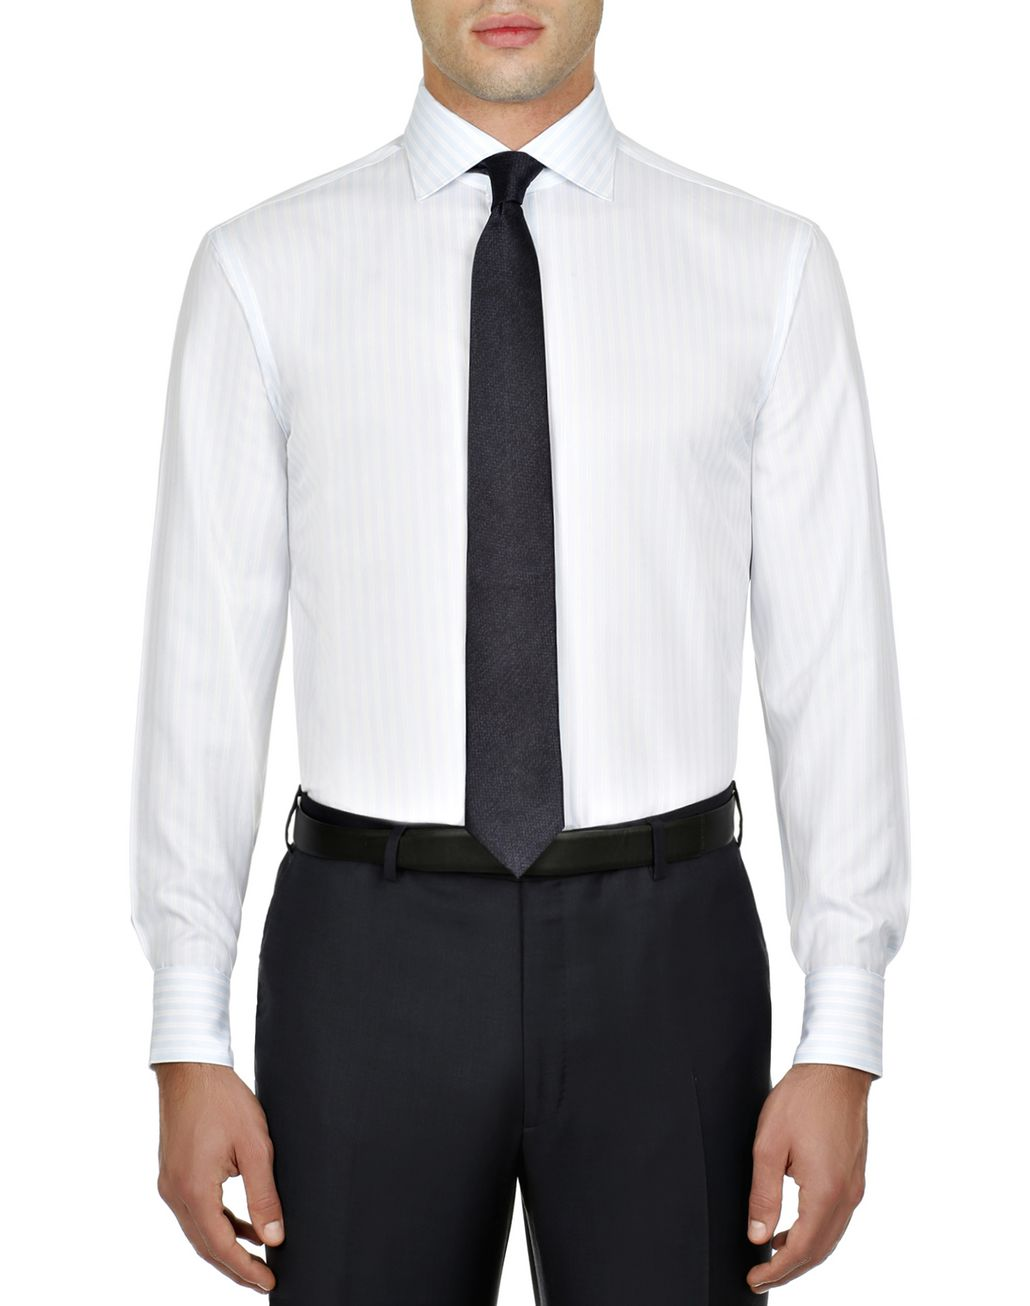 BRIONI Lead and White Striped Shirt Elegantes Hemd Herren r